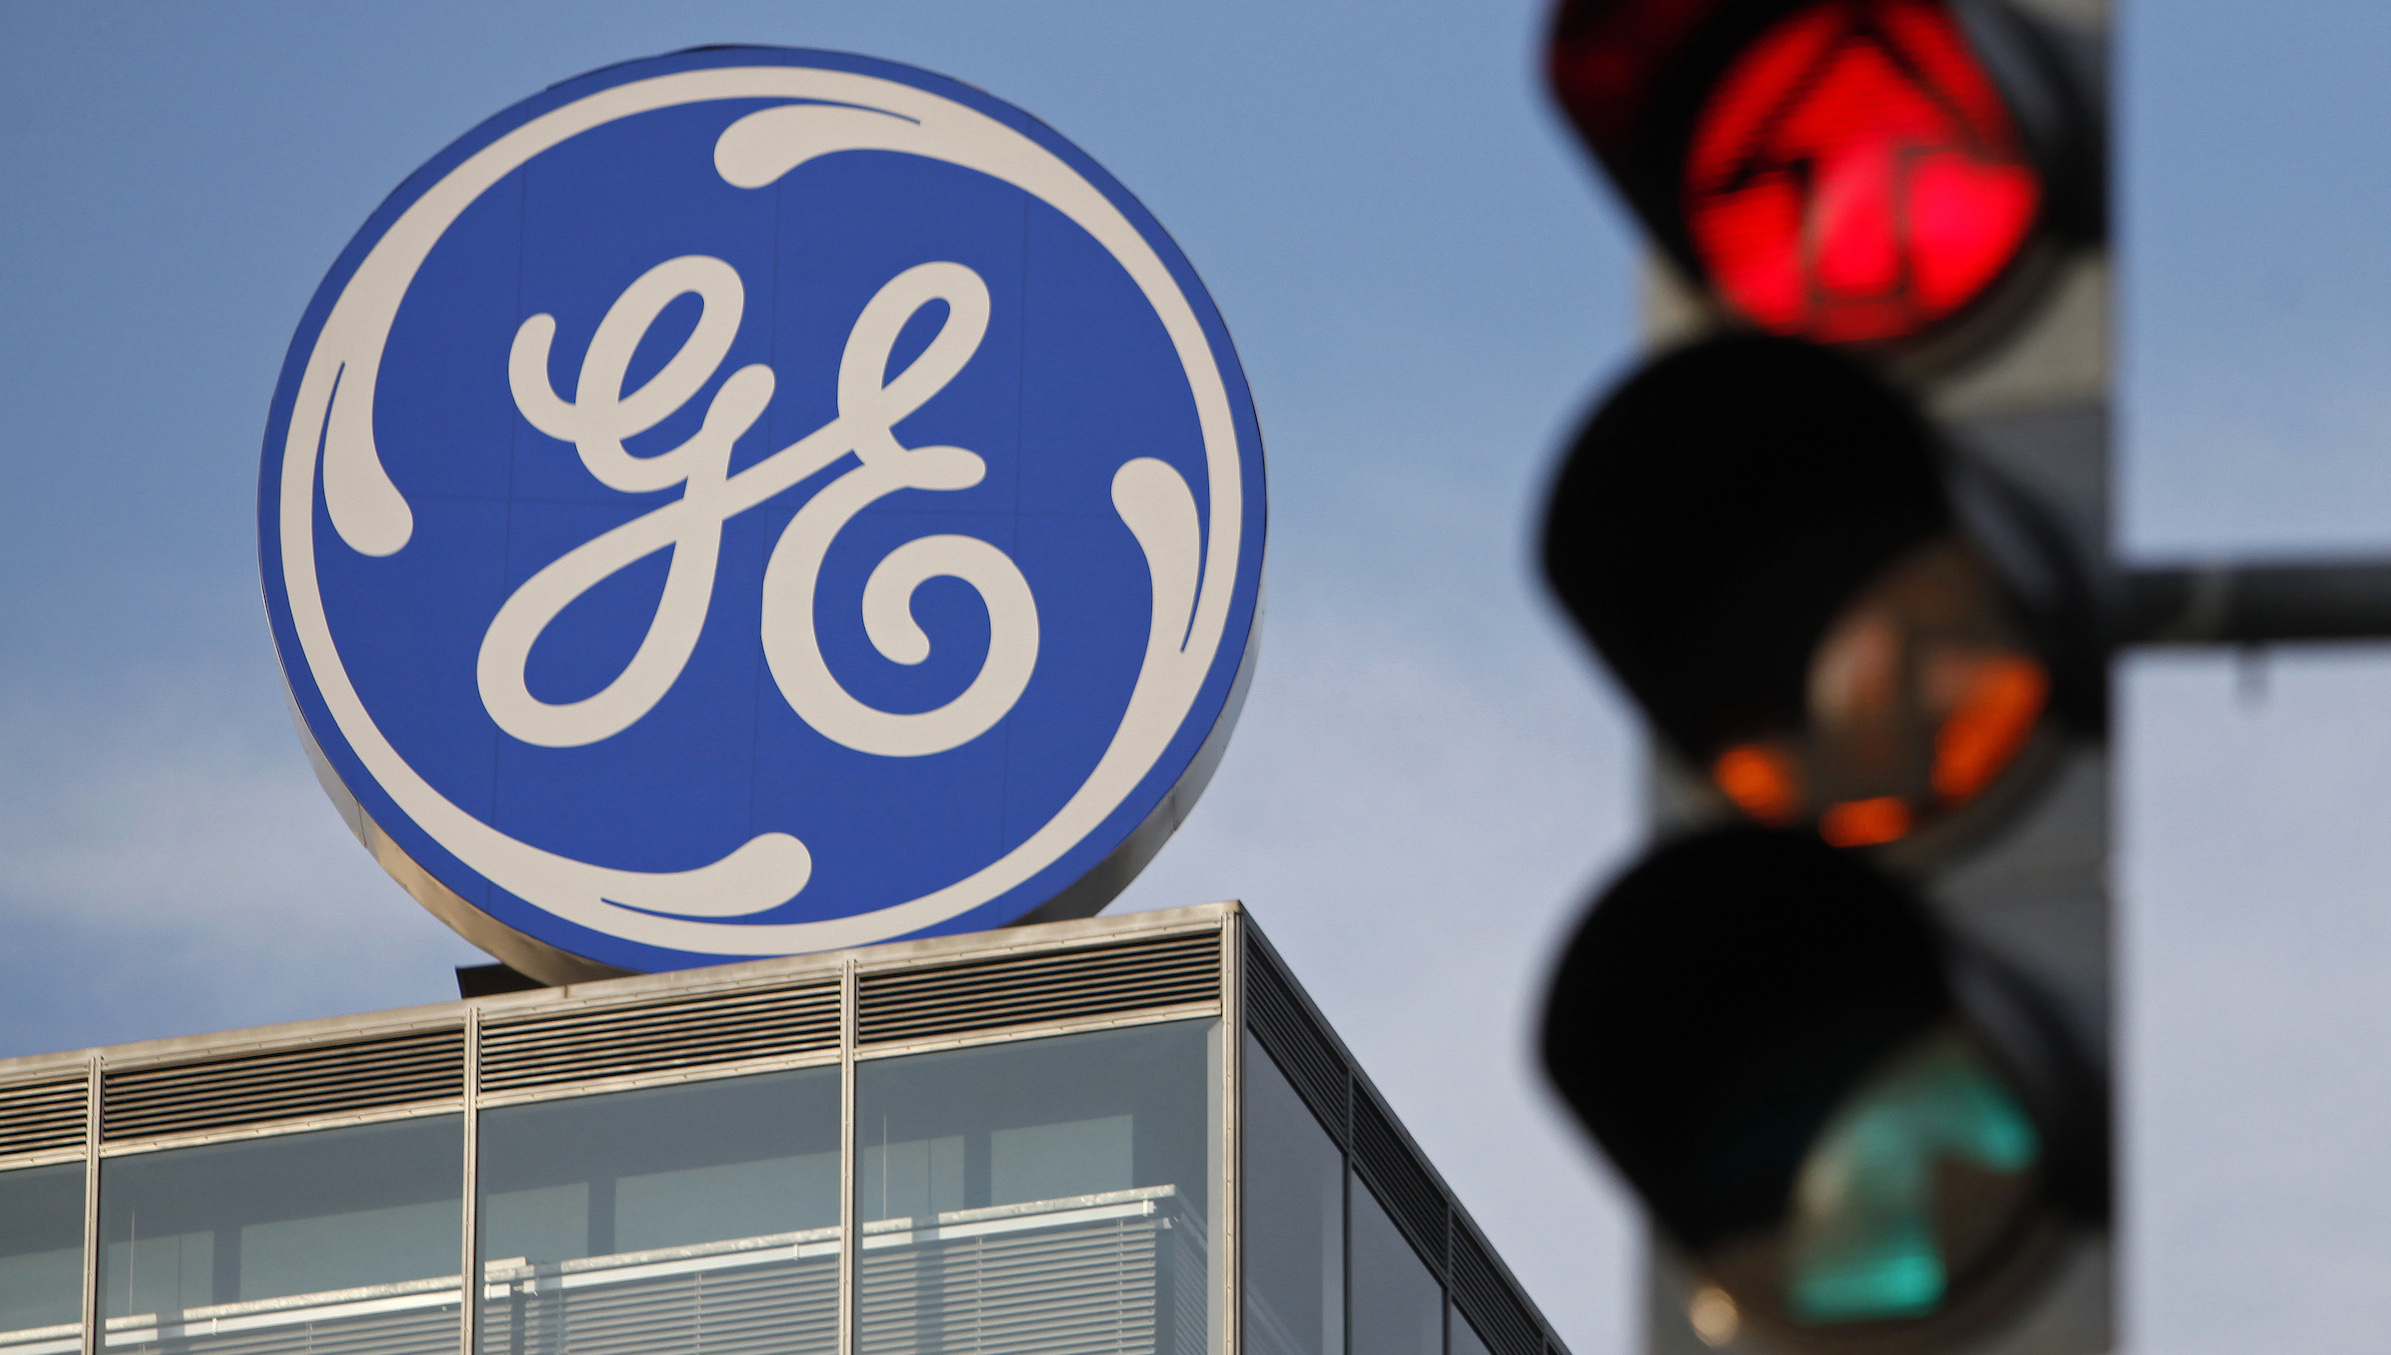 The logo of the GE Money Bank is seen behind a traffic light in Prague May 29, 2012.         REUTERS/David W Cerny (CZECH REPUBLIC  - Tags: BUSINESS LOGO) - RTR32UMC